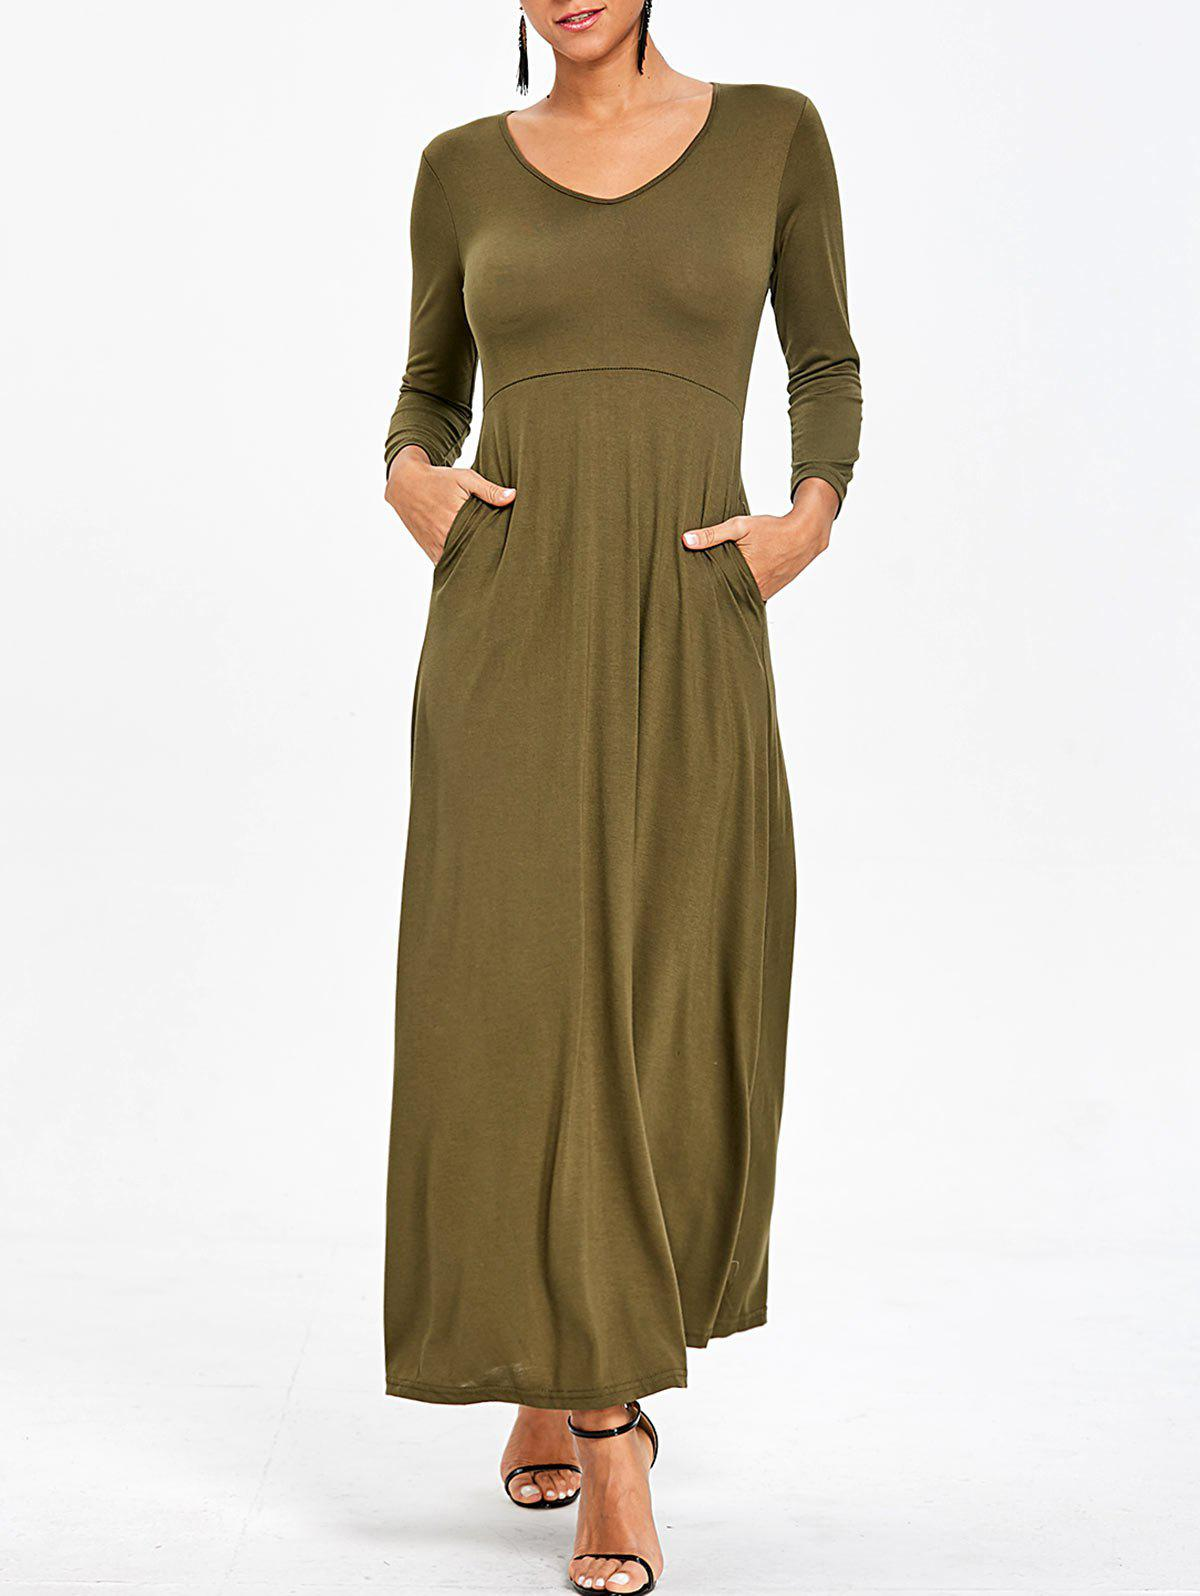 V Neck Empire Waist Maxi Dress - ARMY GREEN S